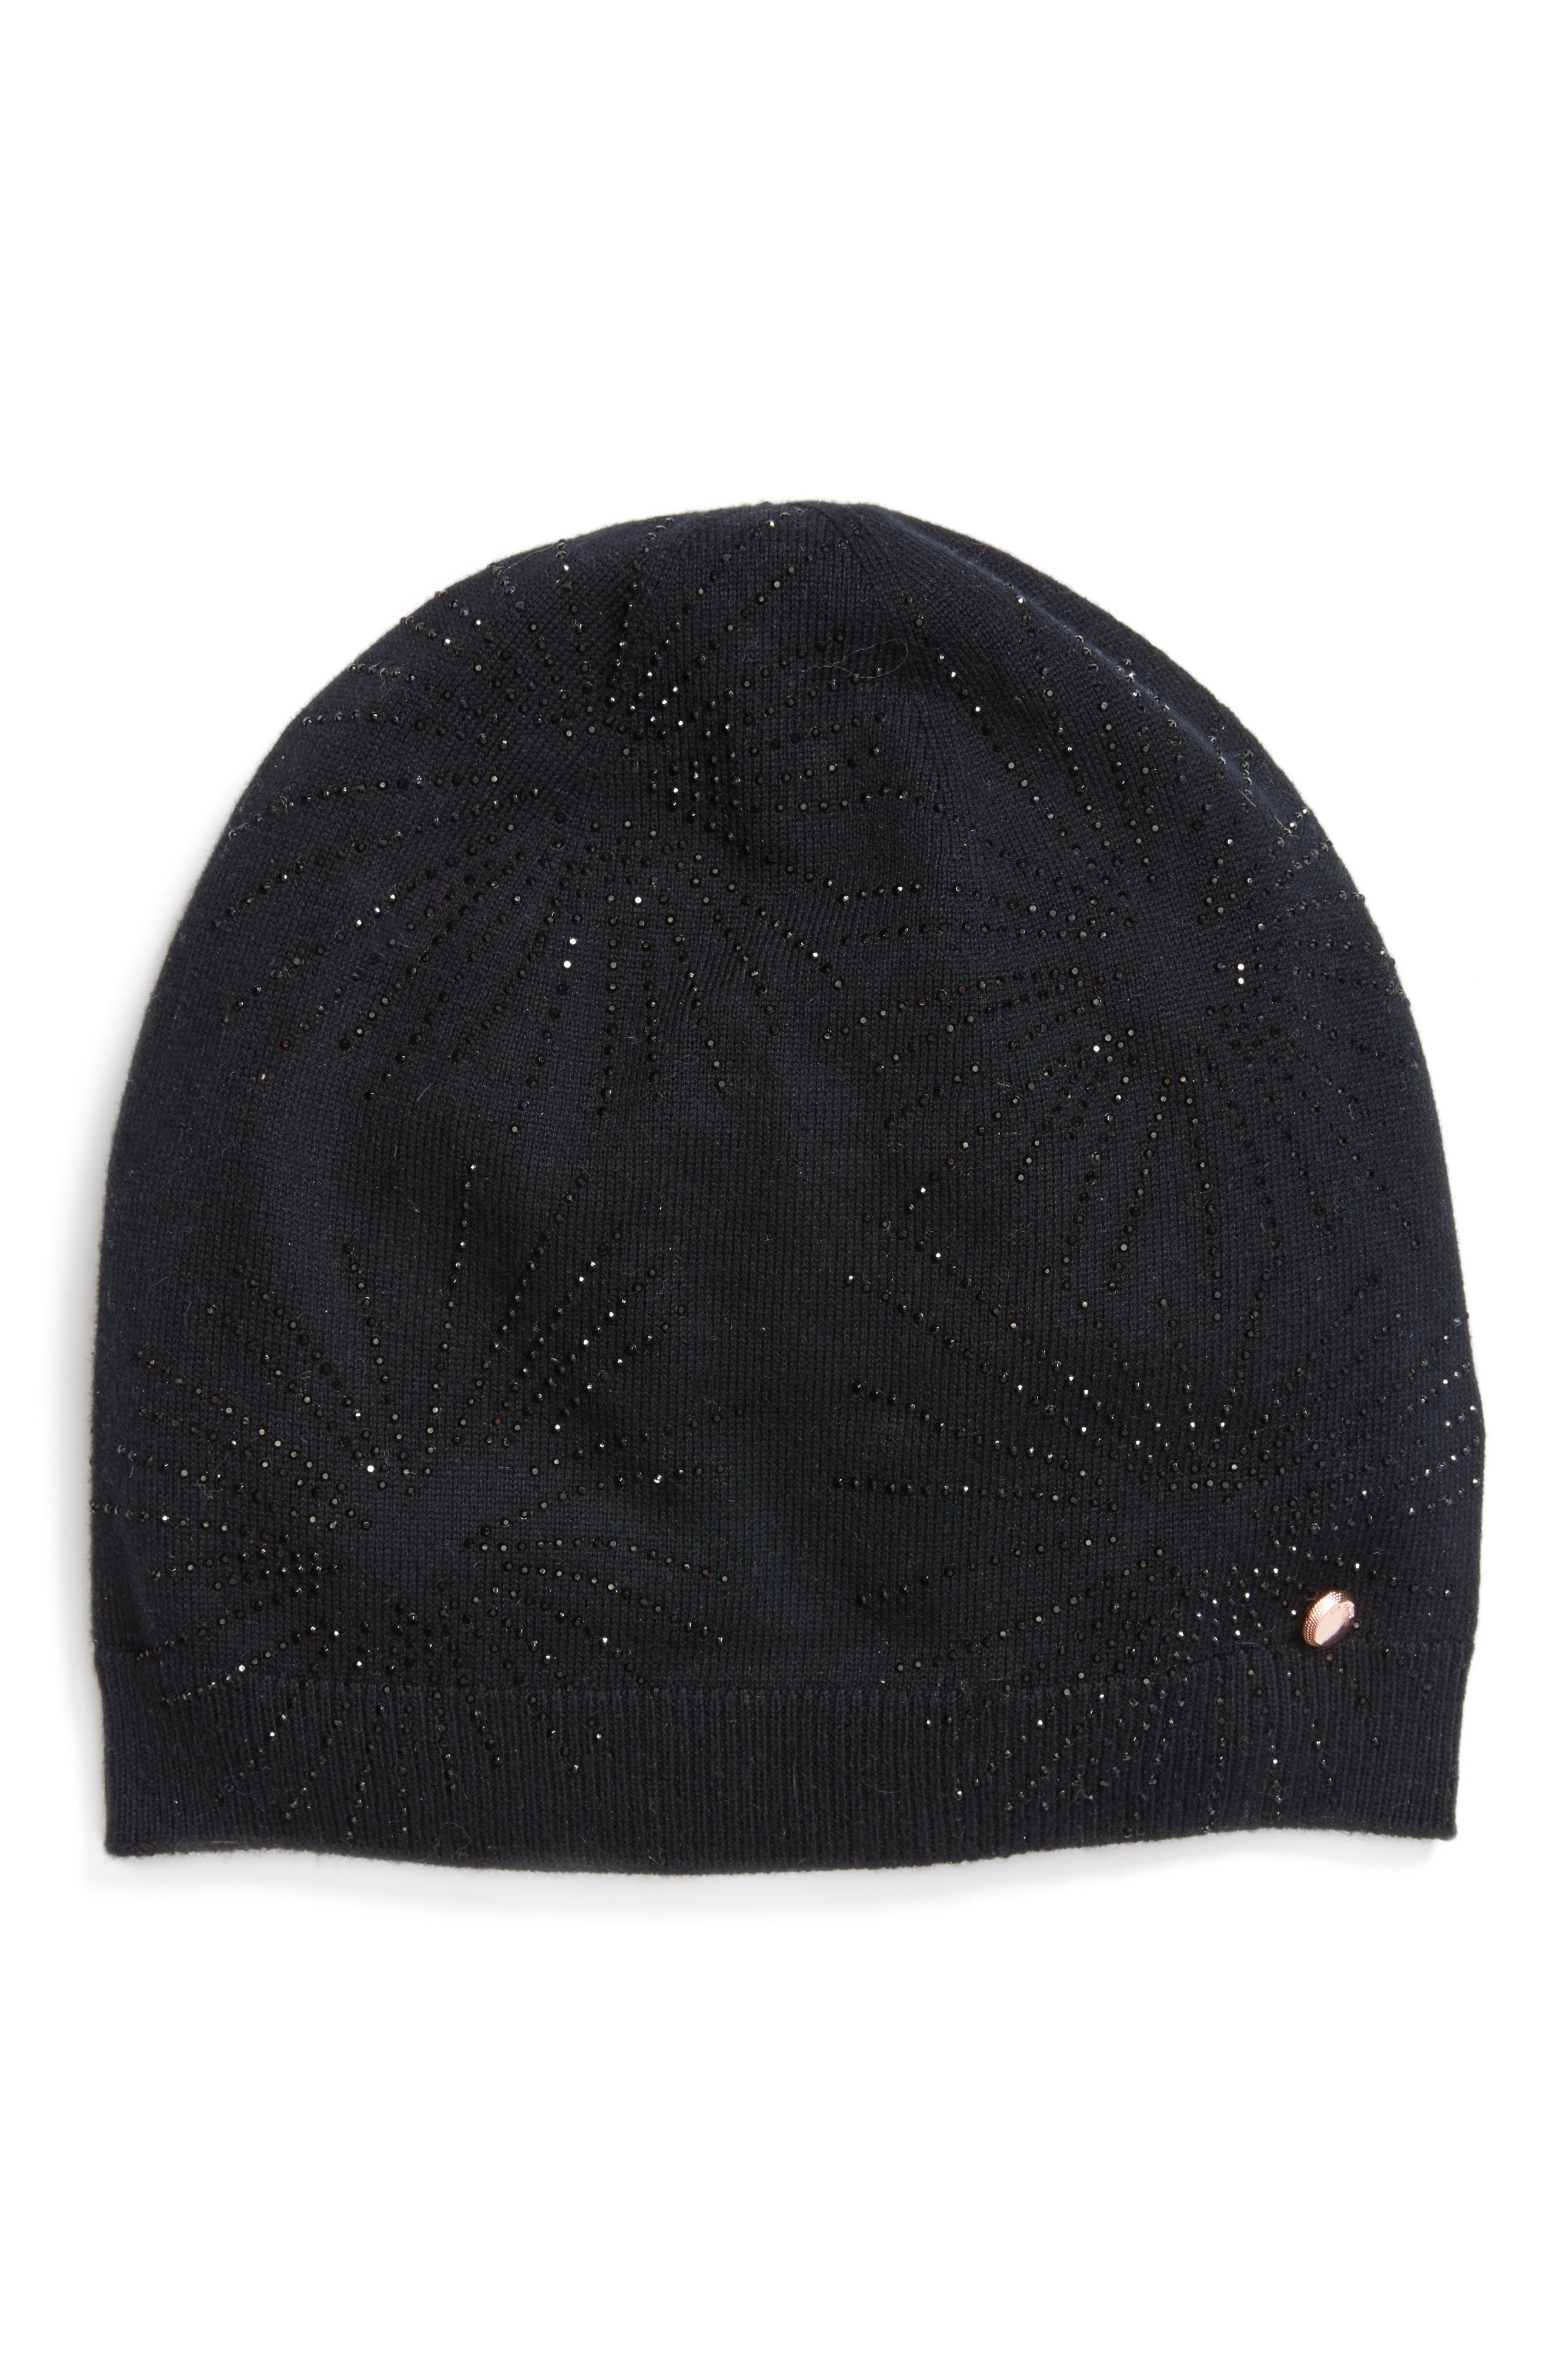 Main Image - Ted Baker London Stardust Embellished Knit Beanie